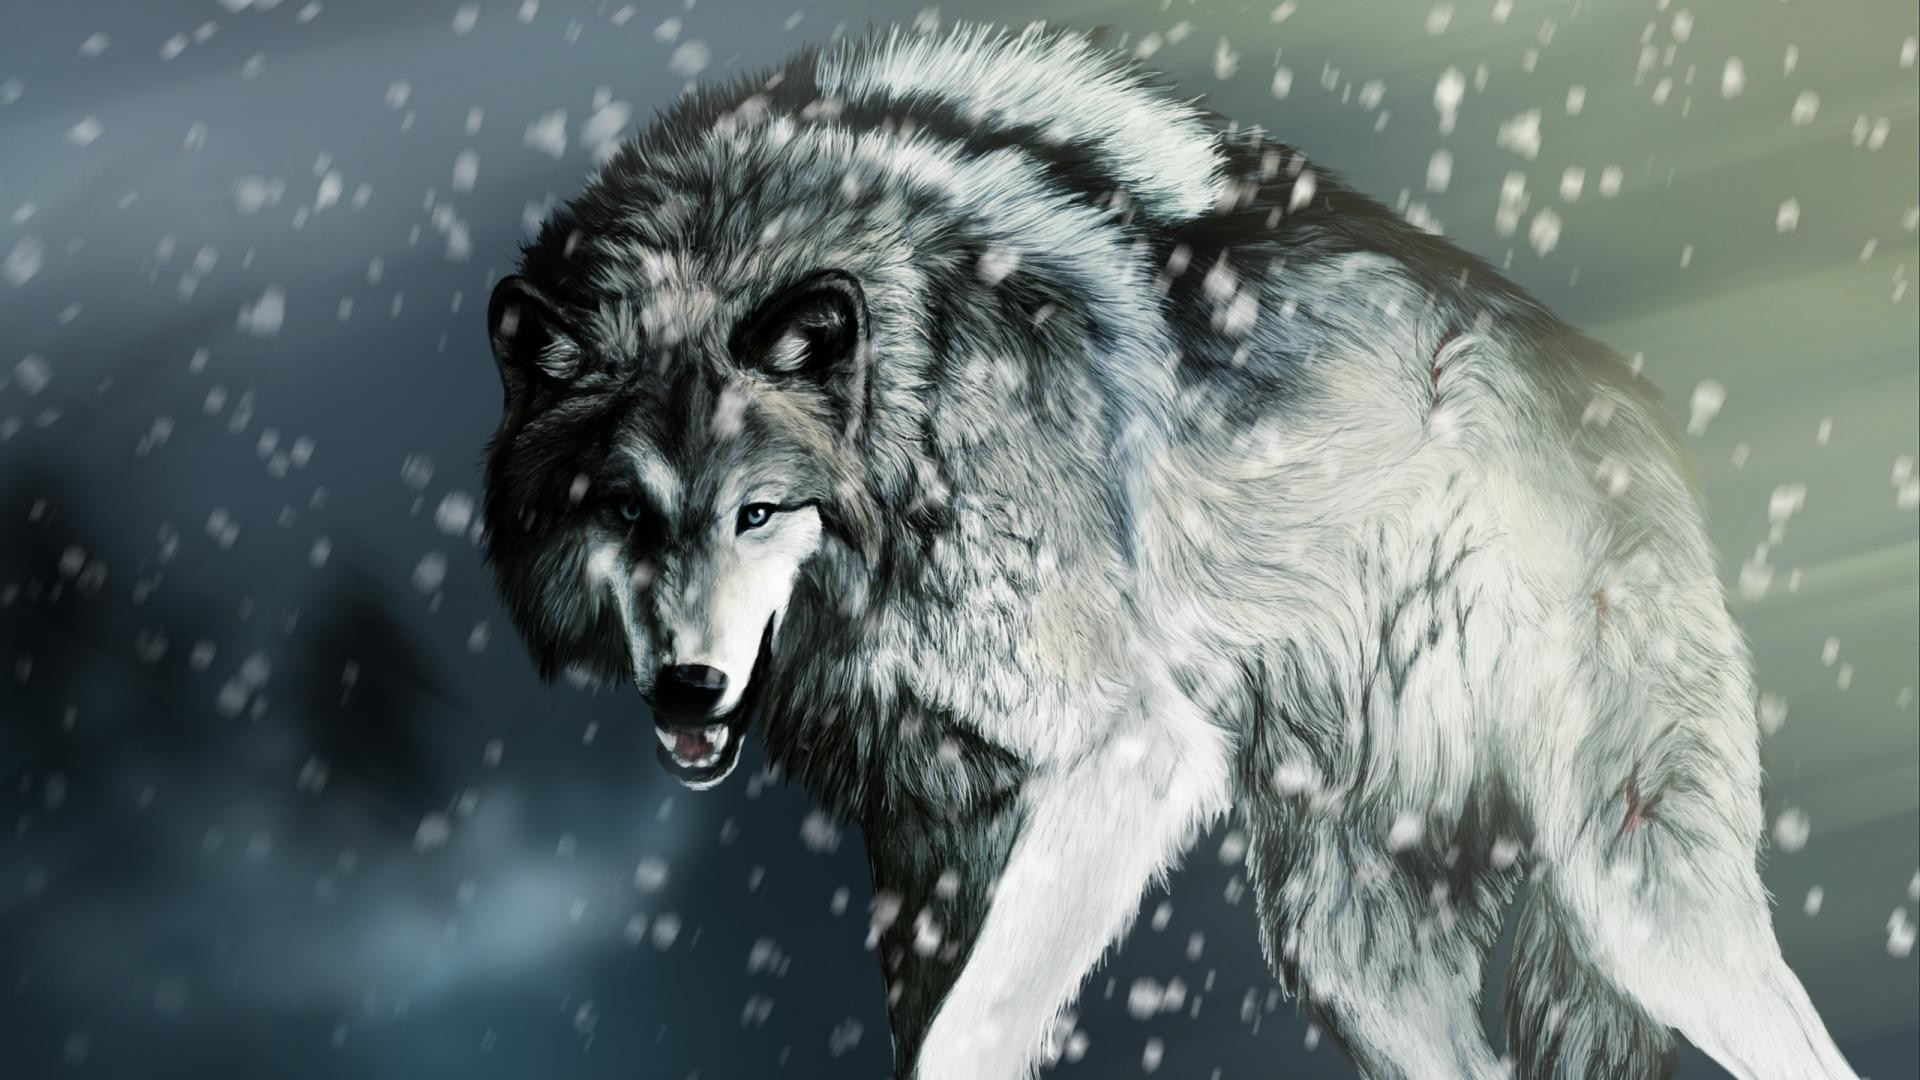 1920x1080 Wolf HD Wallpapers - HD Wallpapers Inn